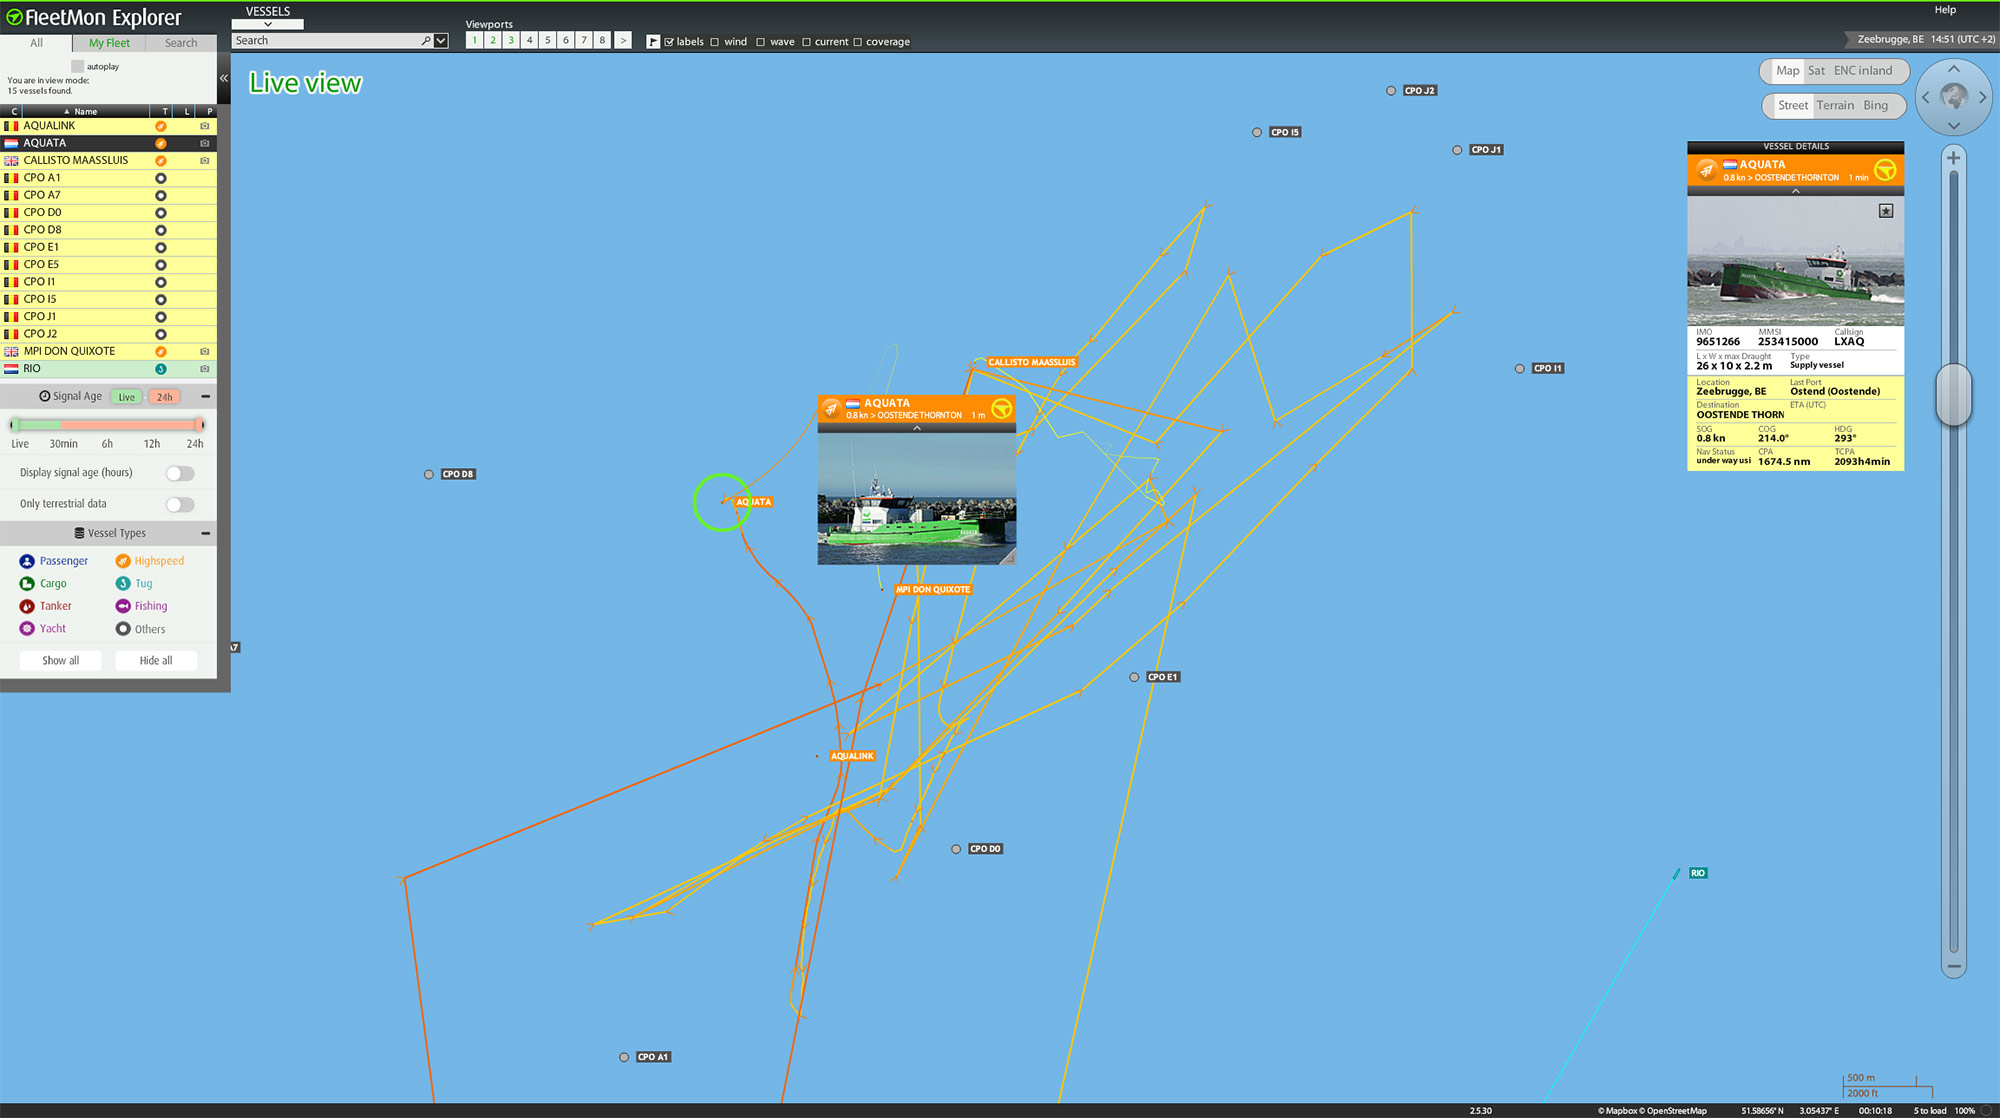 Live vessel tracking and monitoring with FleetMon Explorer